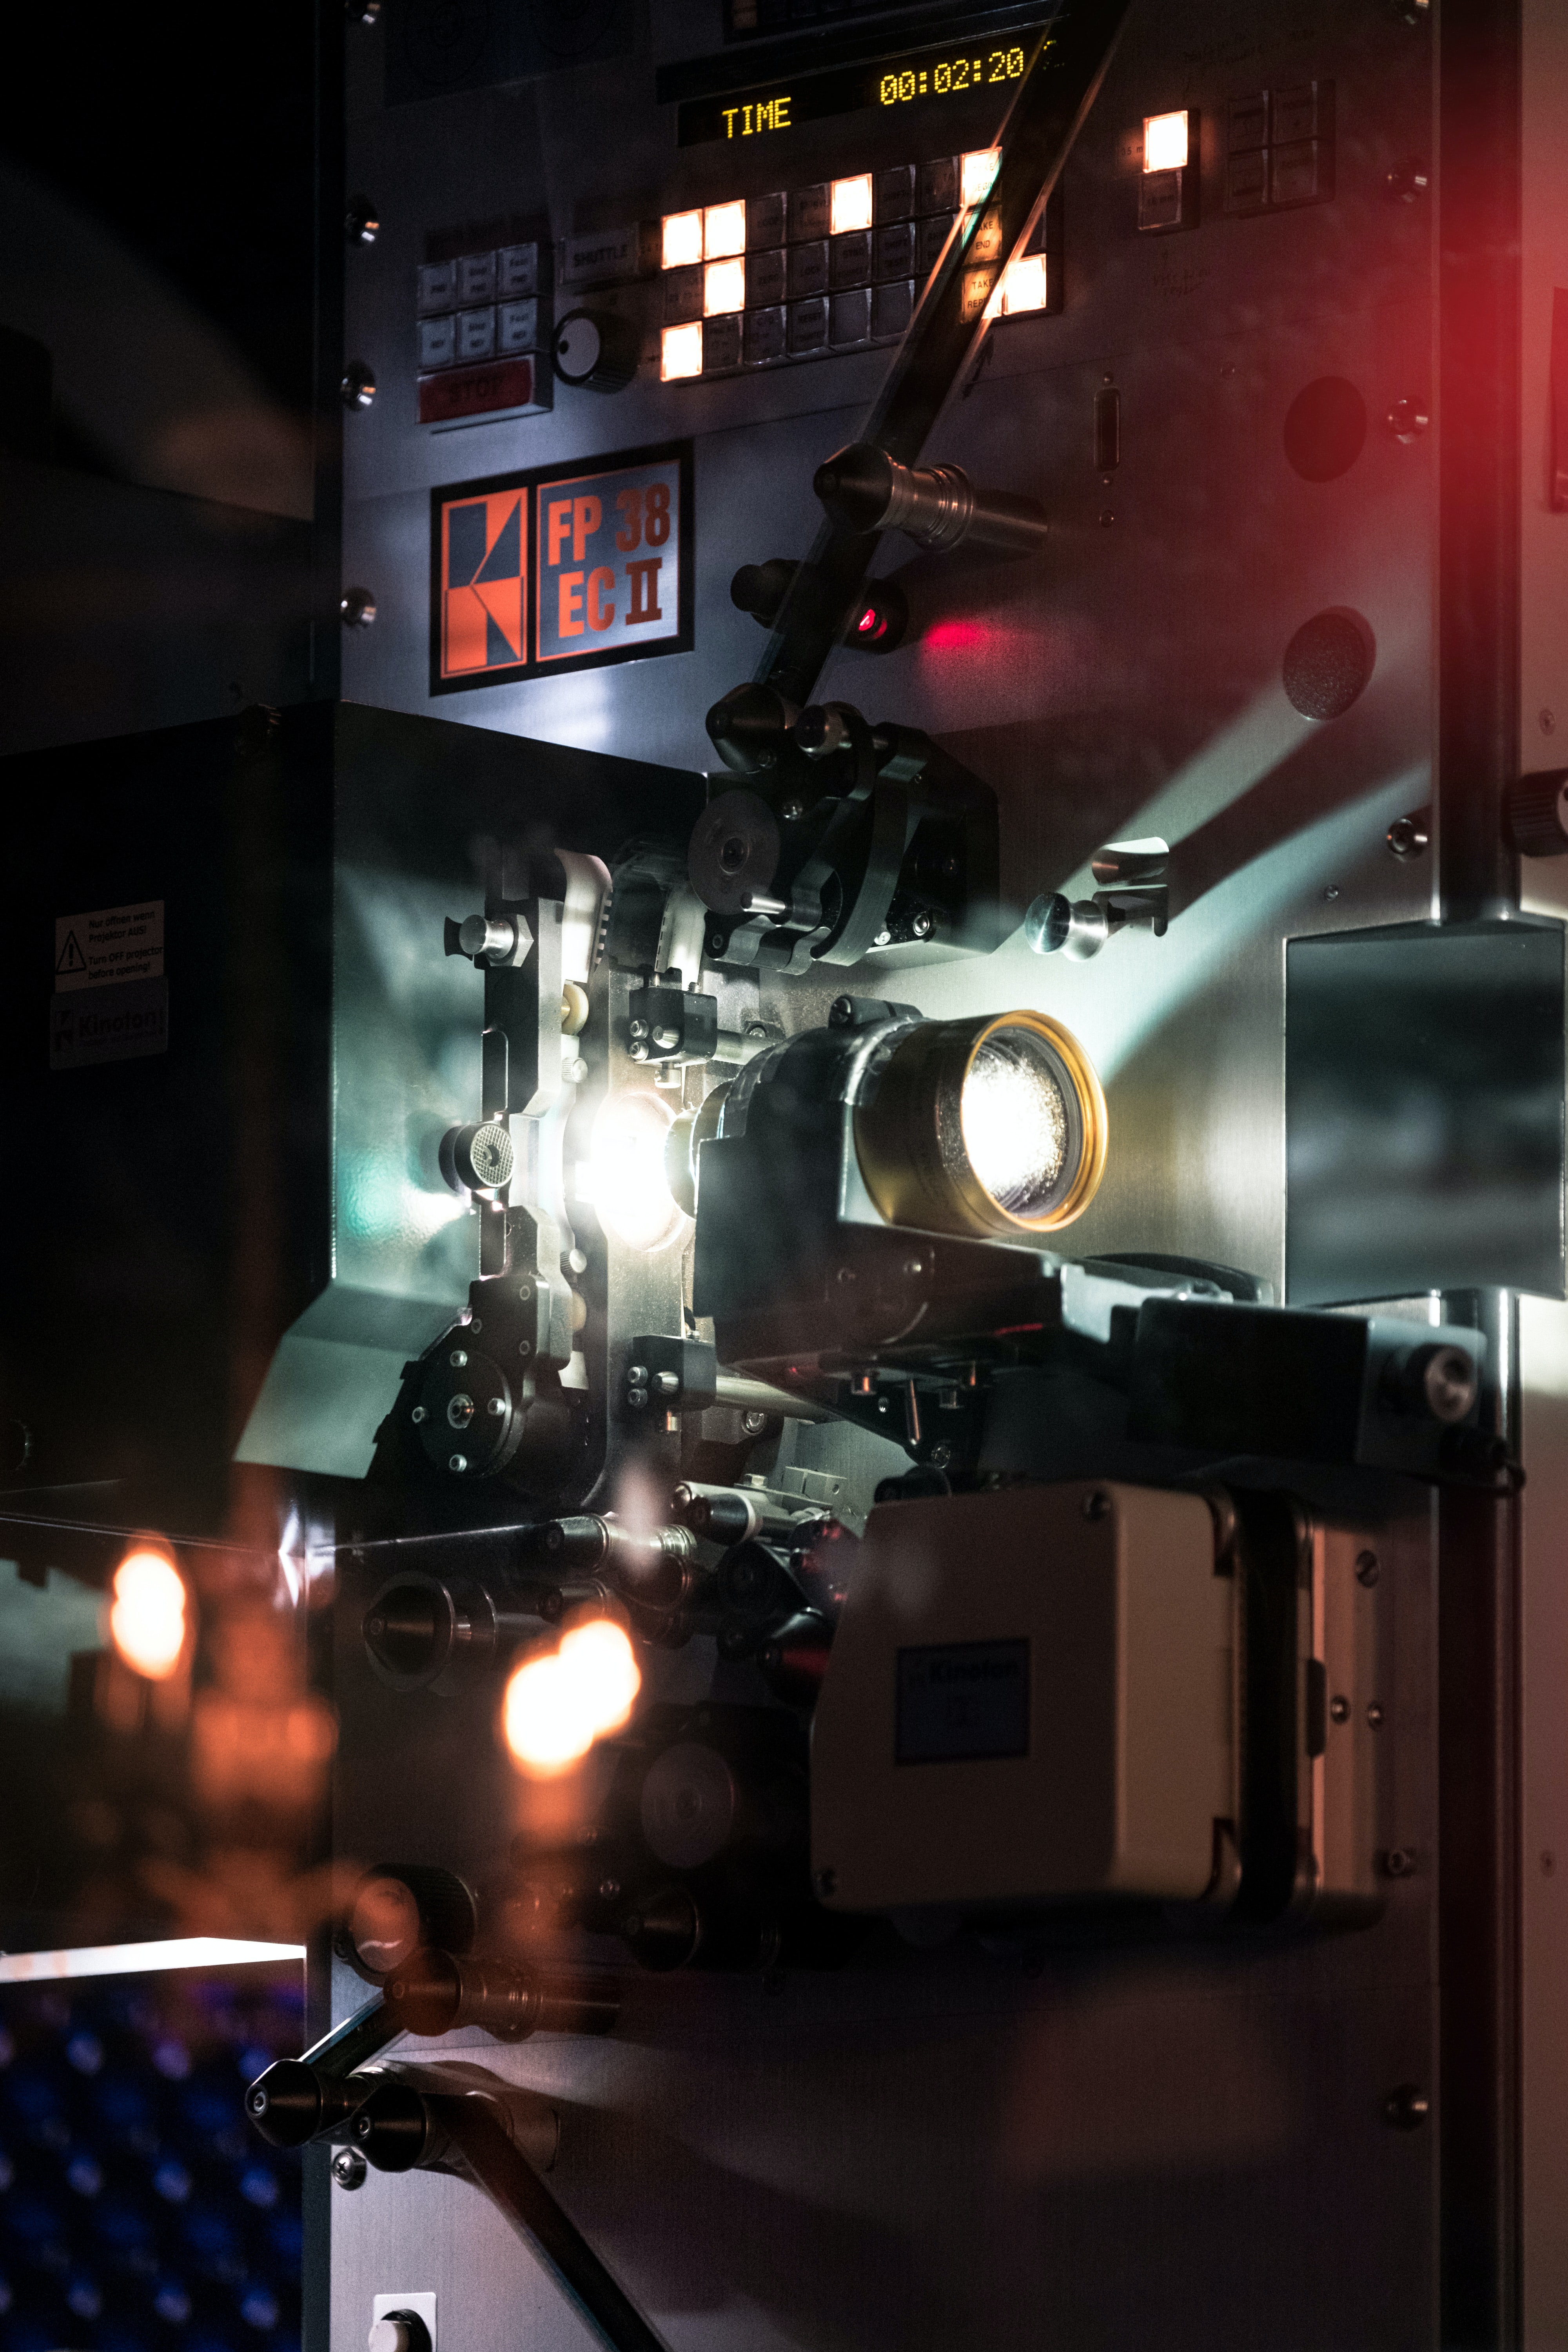 A movie projection camera  emitting light with a timer above